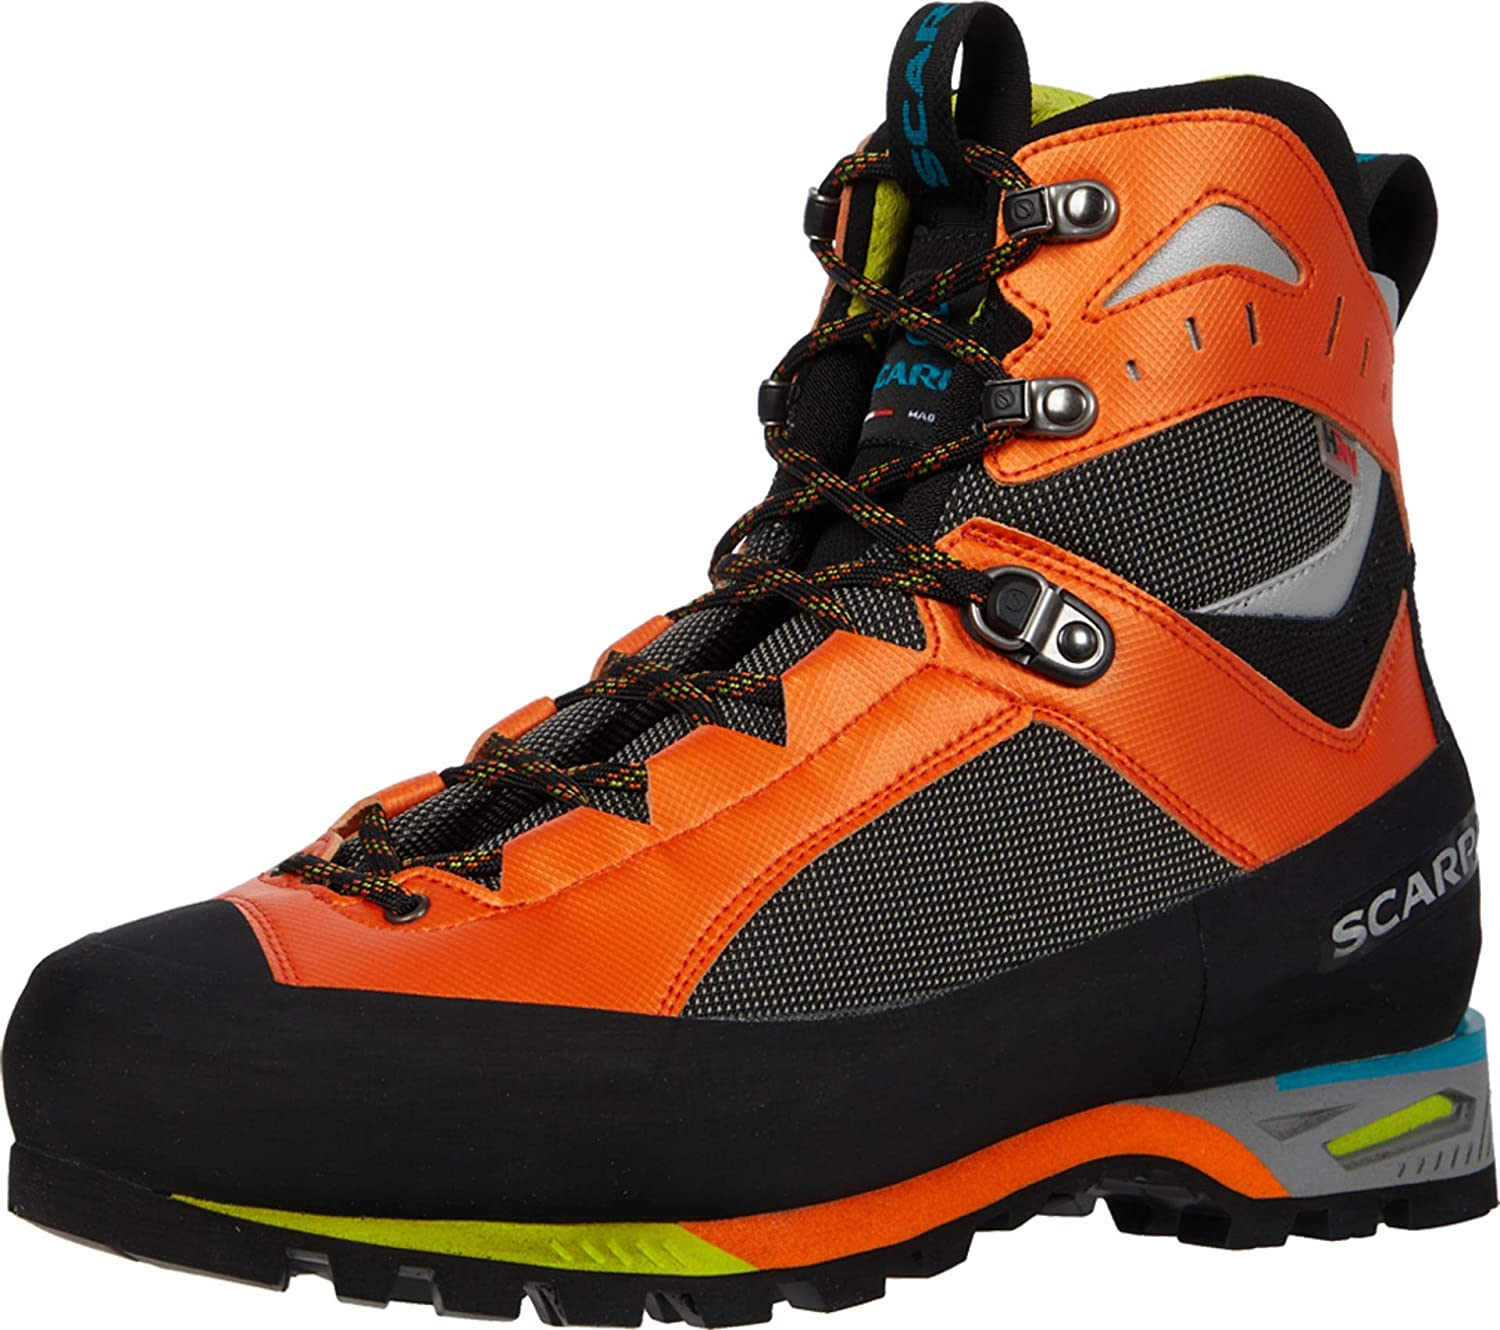 SCARPA Men's Safety and trust Charmoz HD Waterproof for Mountain Hiking quality assurance Boots